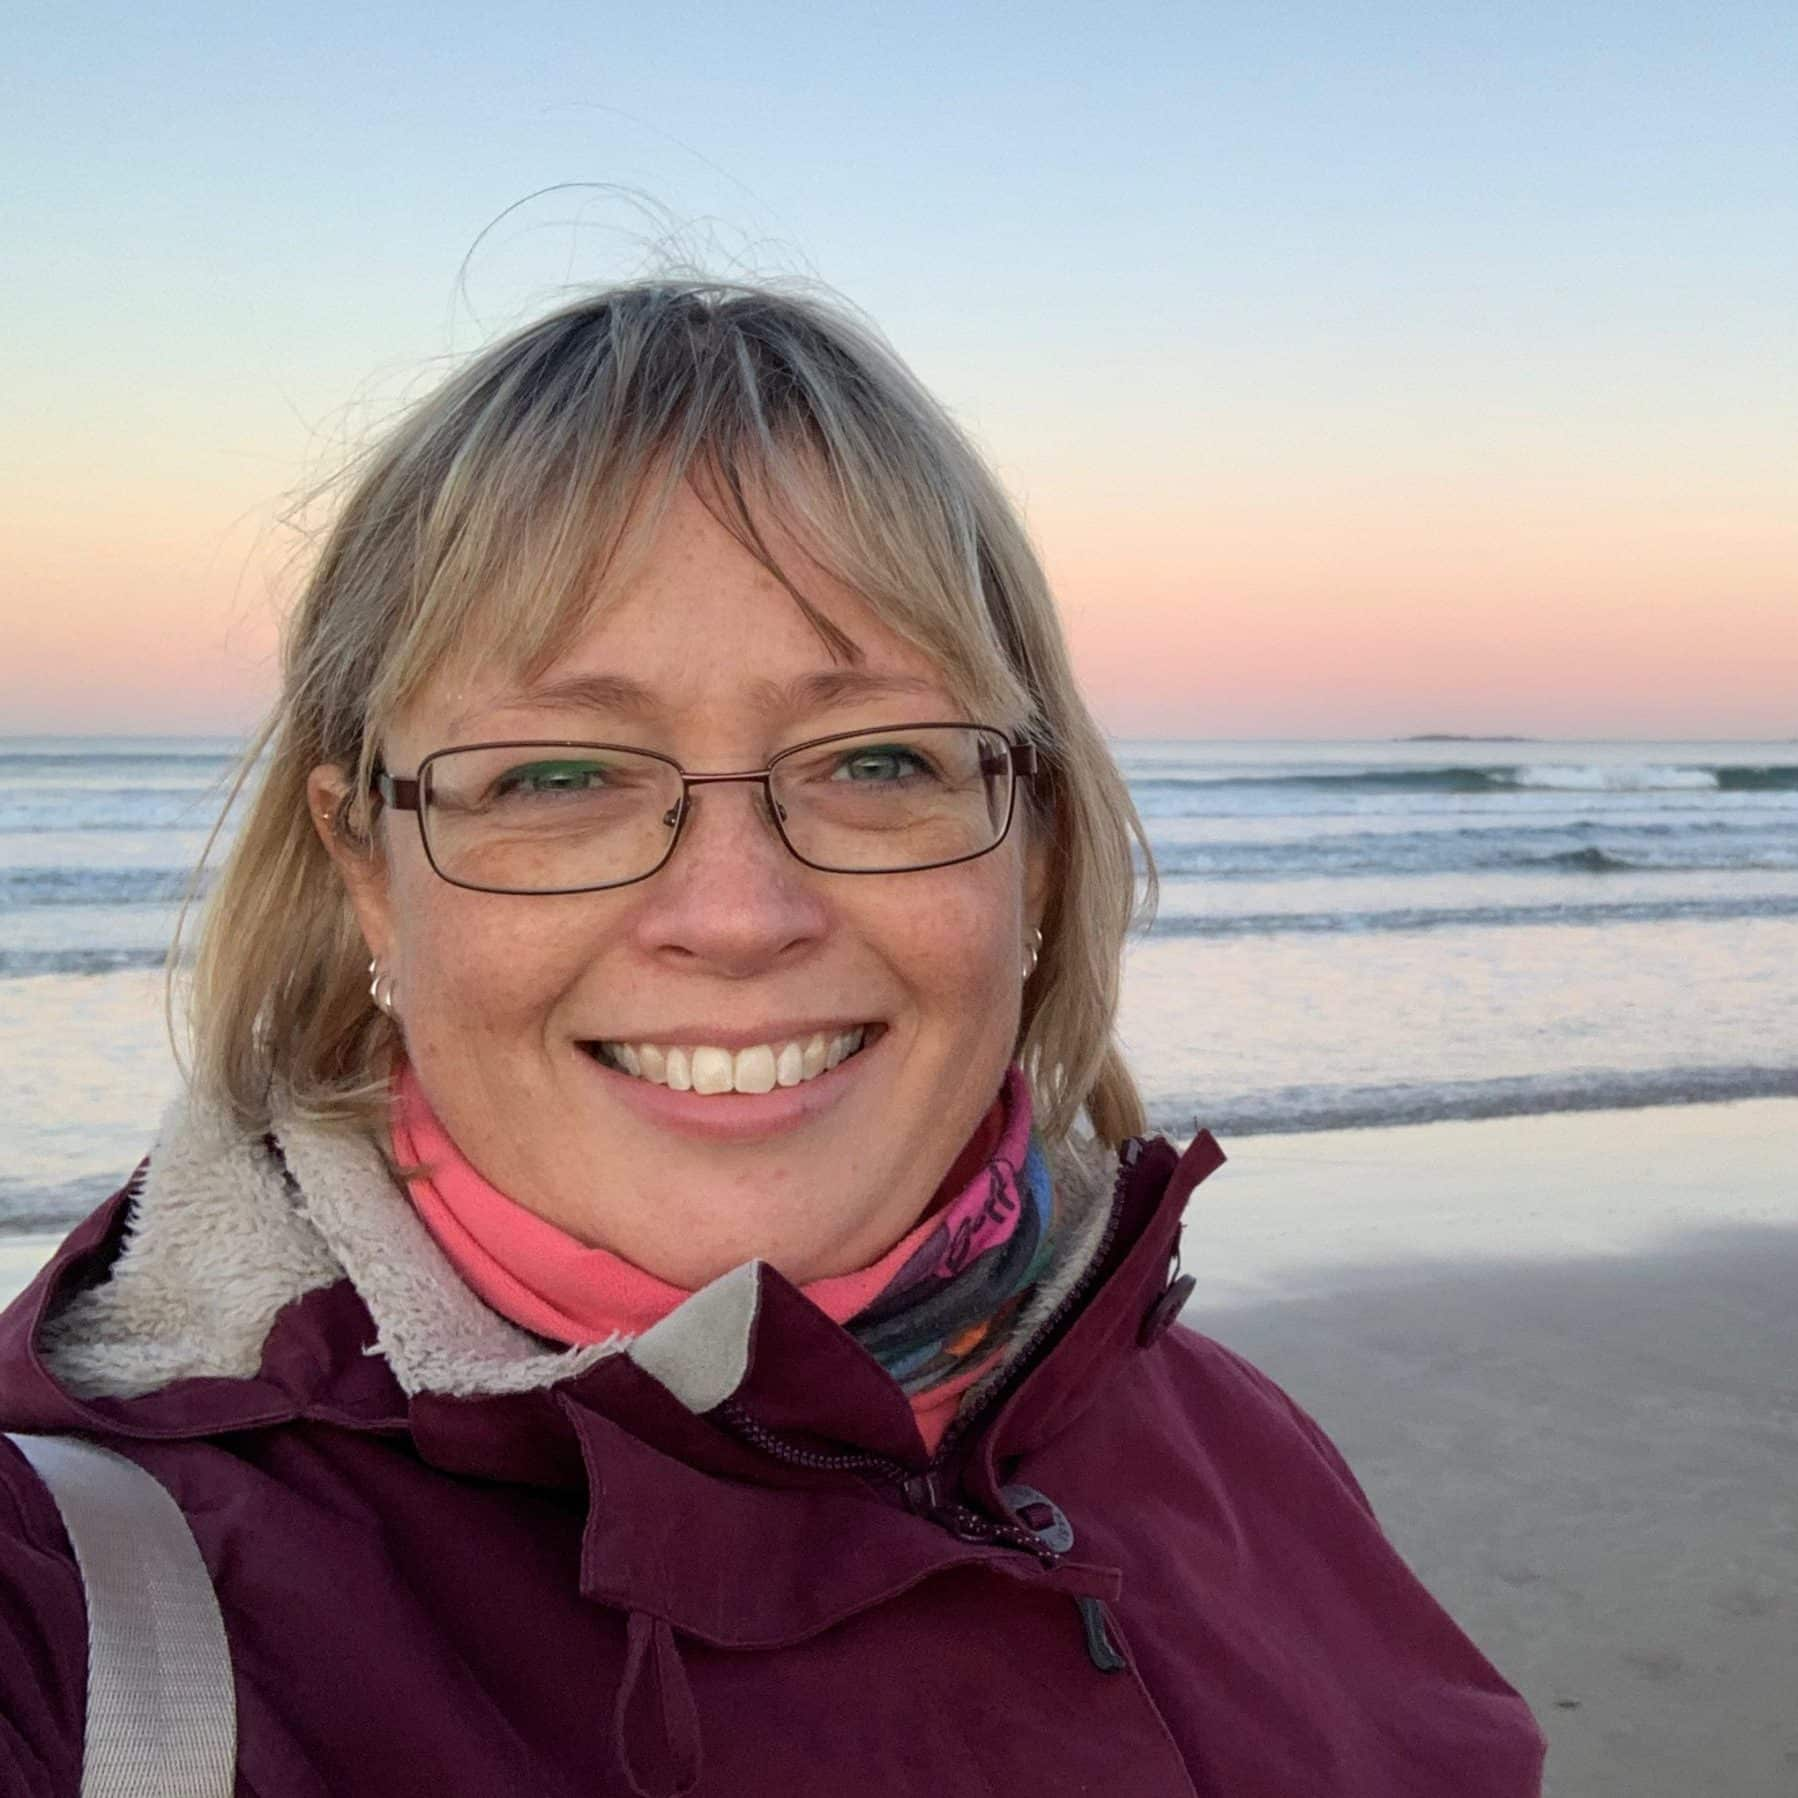 woman on cold beach at sunset